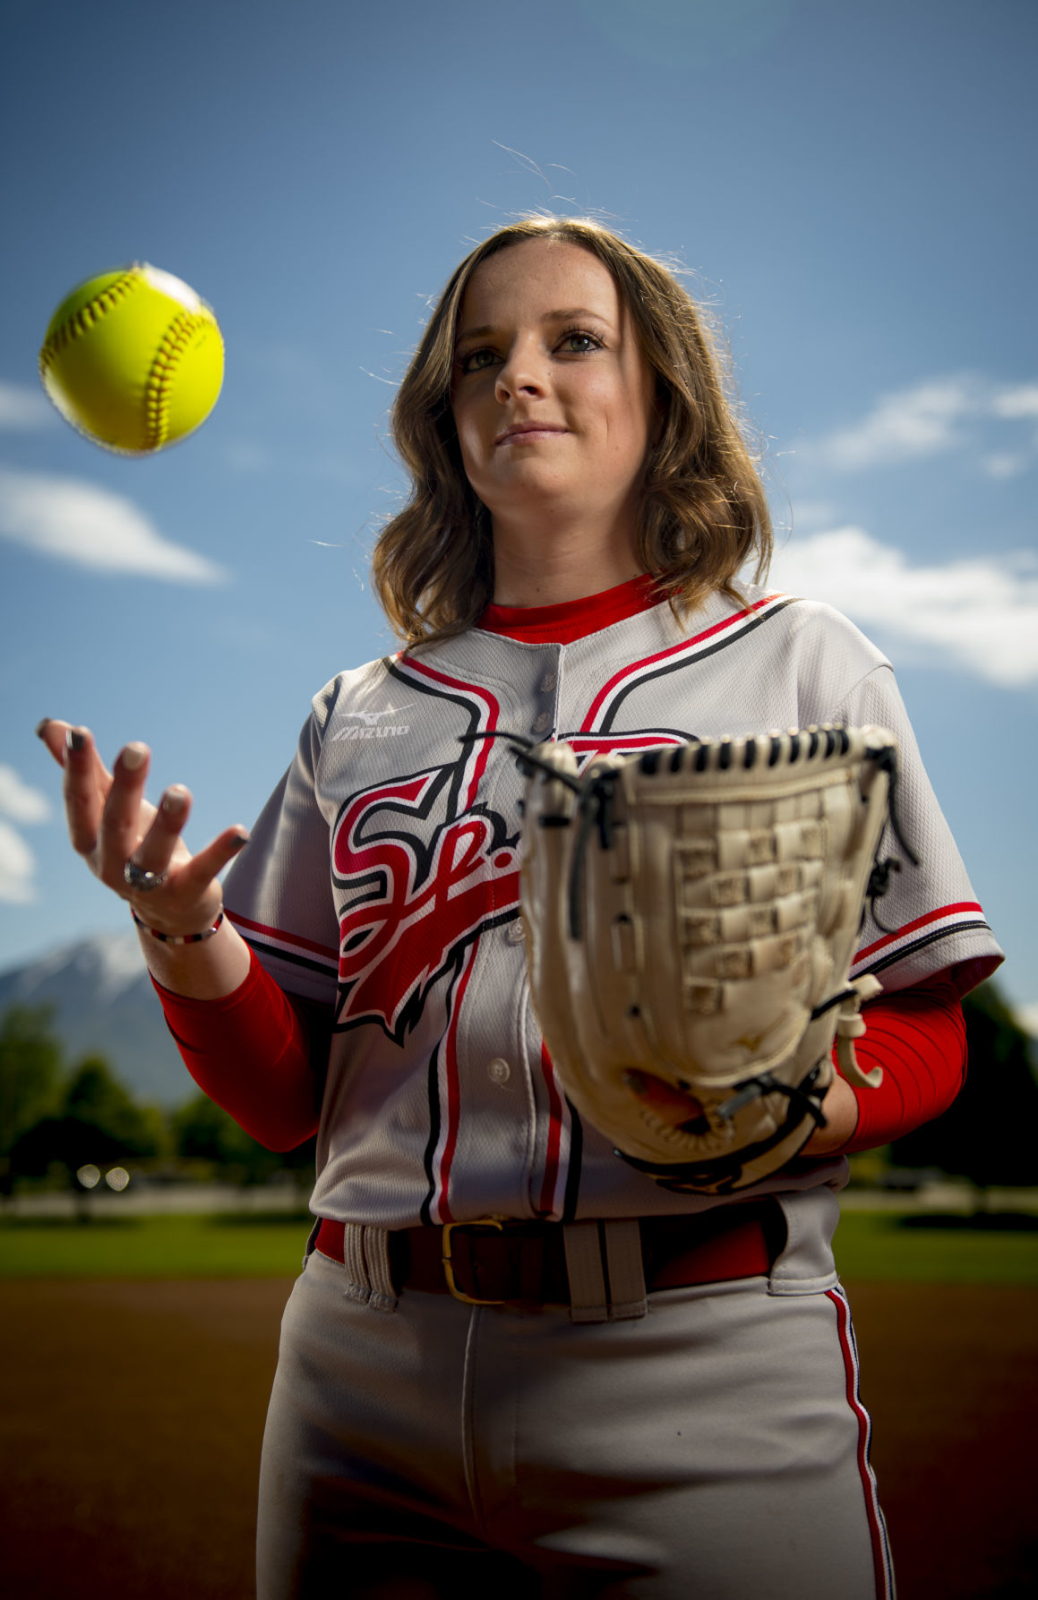 Briley Young earns 2019 All-Valley Softball Player of the Year Award